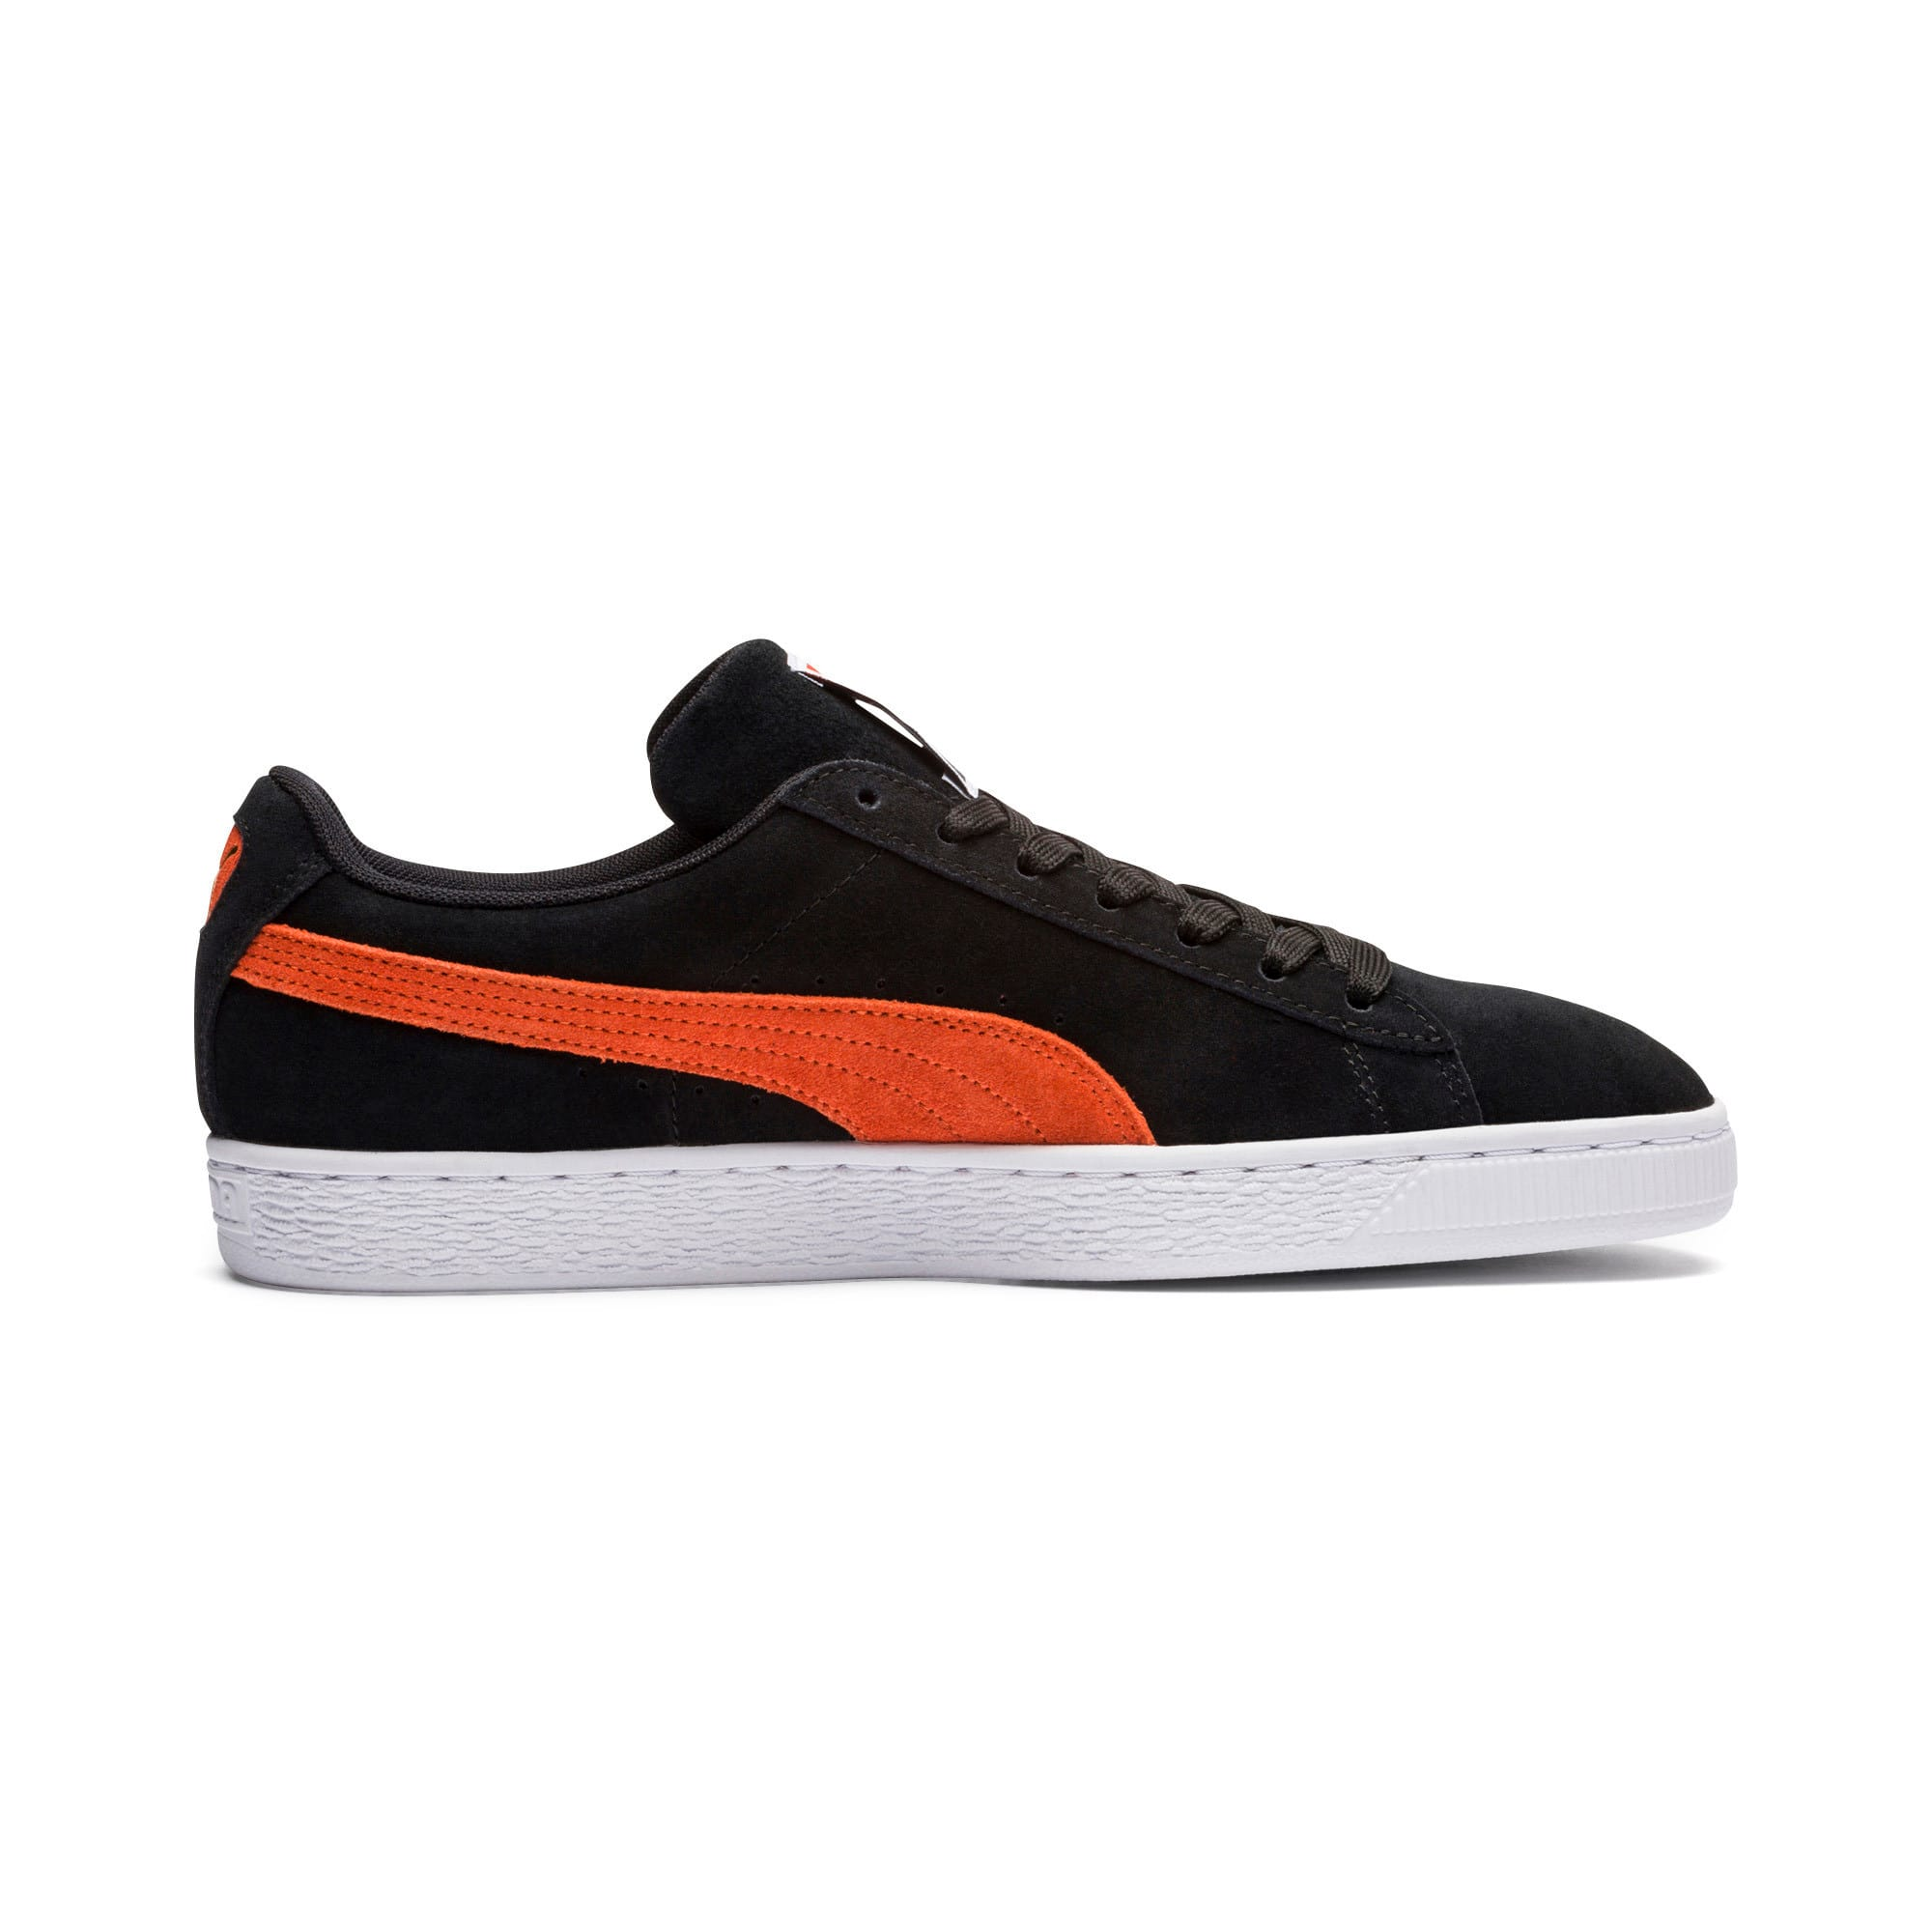 Thumbnail 2 of Suede Classic Trainers, Black-Firecracker- White, medium-IND